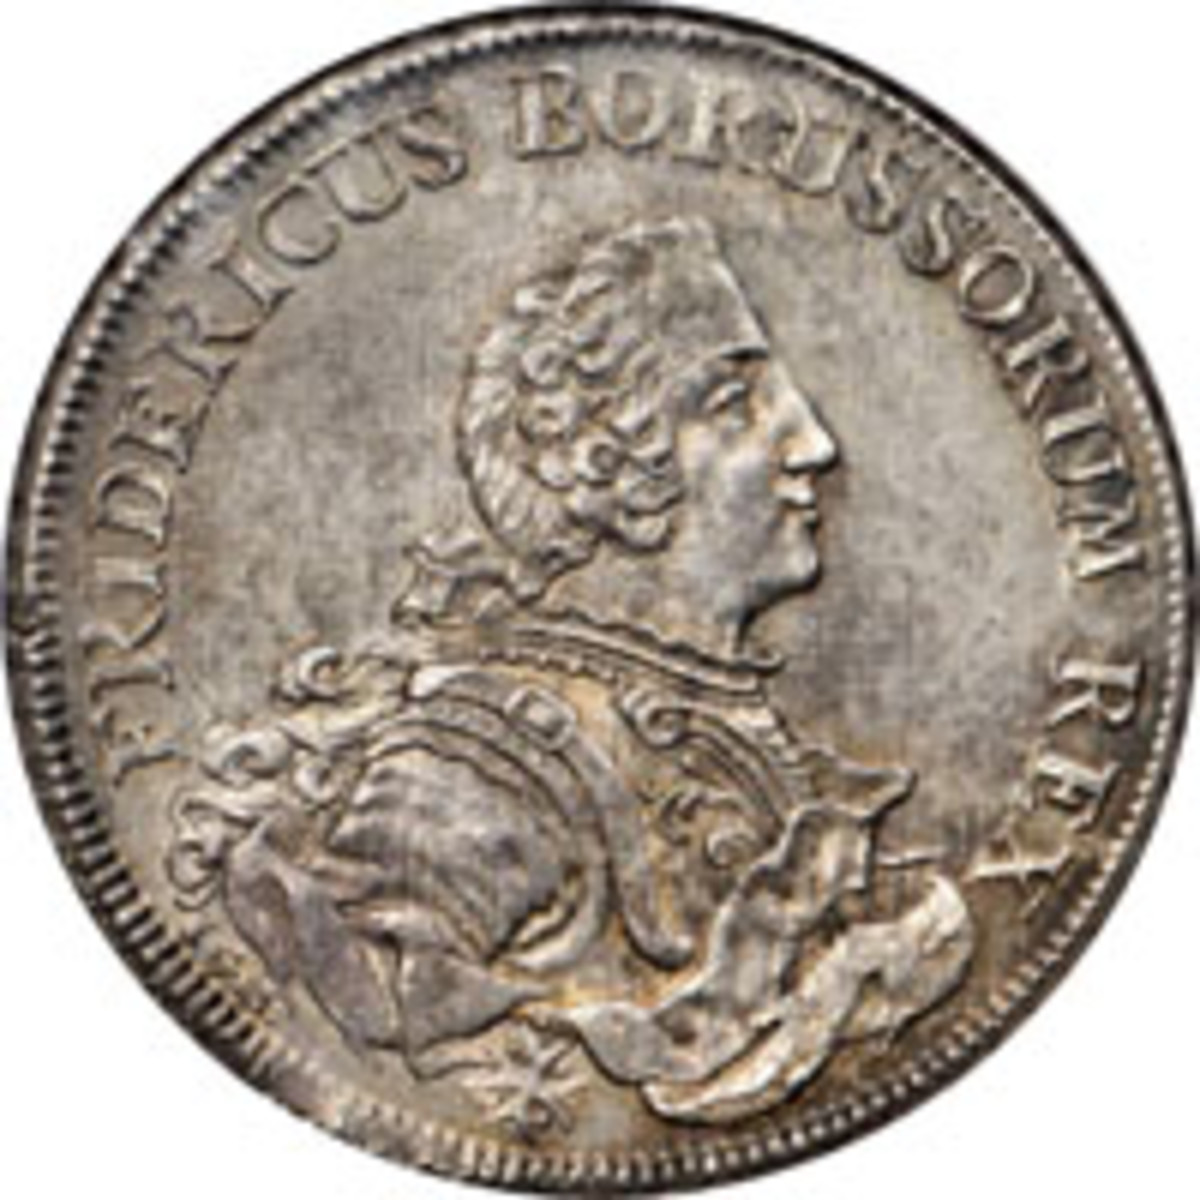 Top-priced silver: Prussian taler of Friedrich the Great struck in 1751 (ND) on behalf of the Royal Prussian Asiatic Society. In NGC MS-64, it made $13,200. (Image courtesy Stack's Bowers)